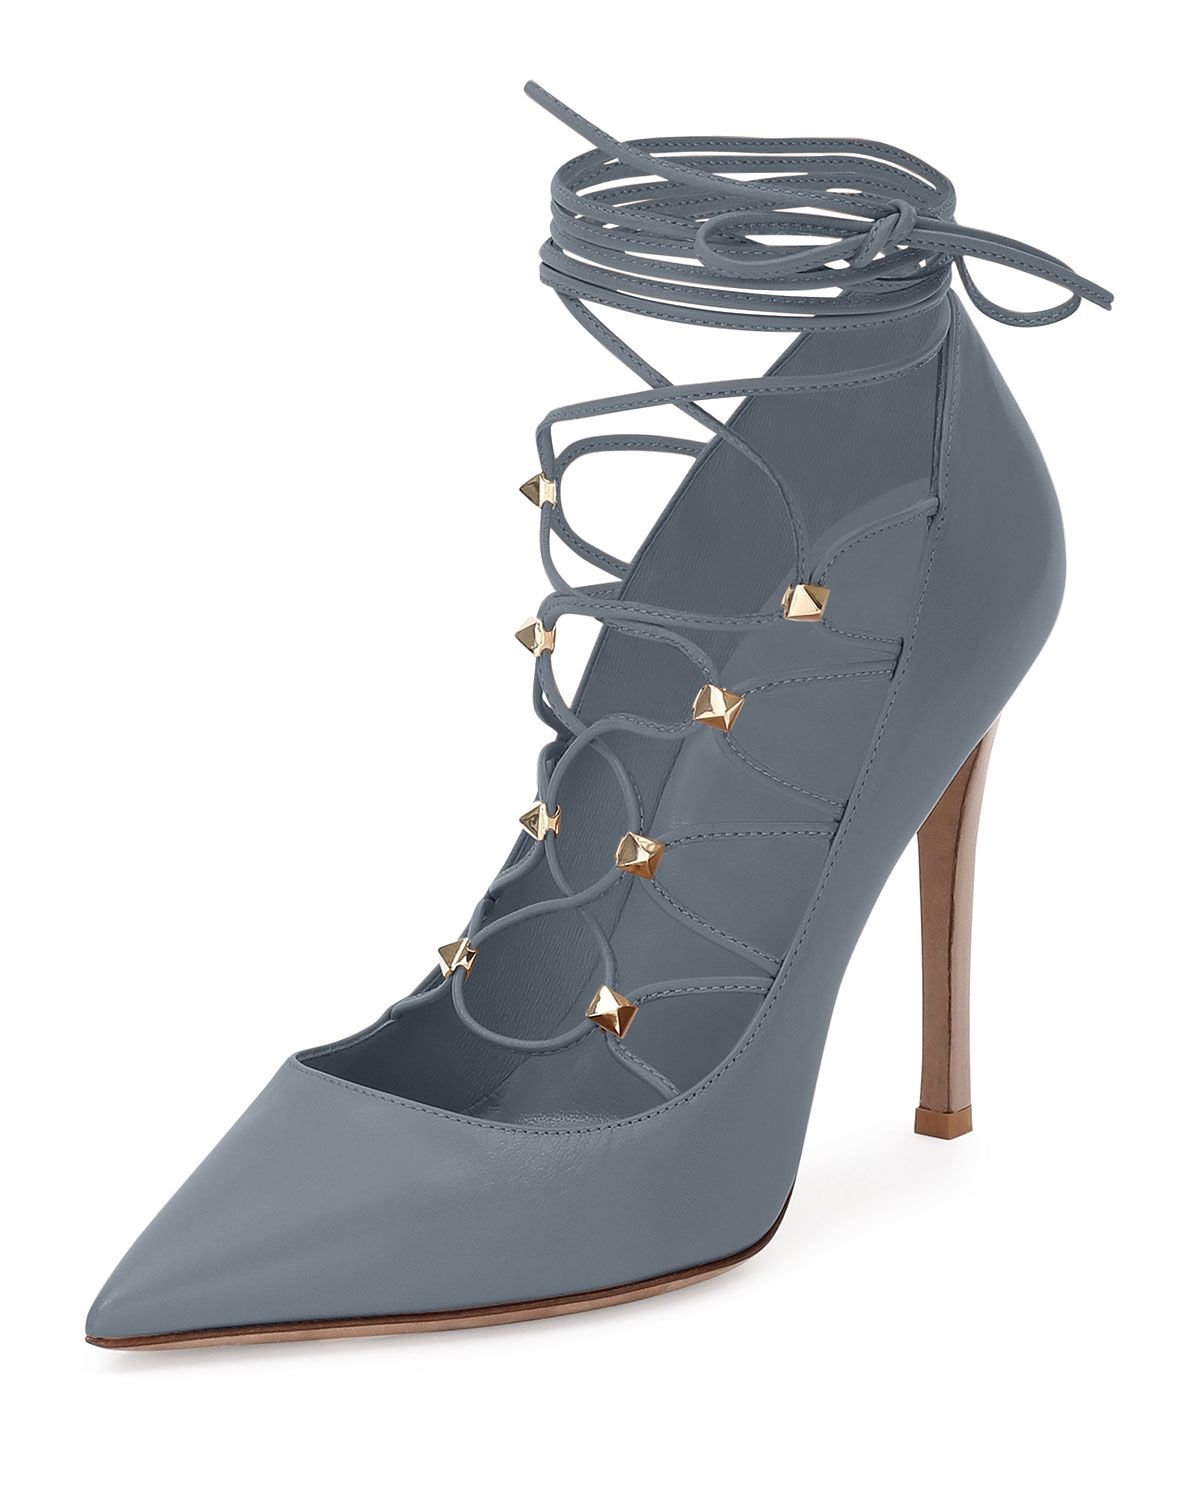 4d7f7ce3cab Red Valentino Rockstud Leather Lace-Up 105mm Pump, Stone (Grey)/Poudre,  Women's, Size: 5B/35EU